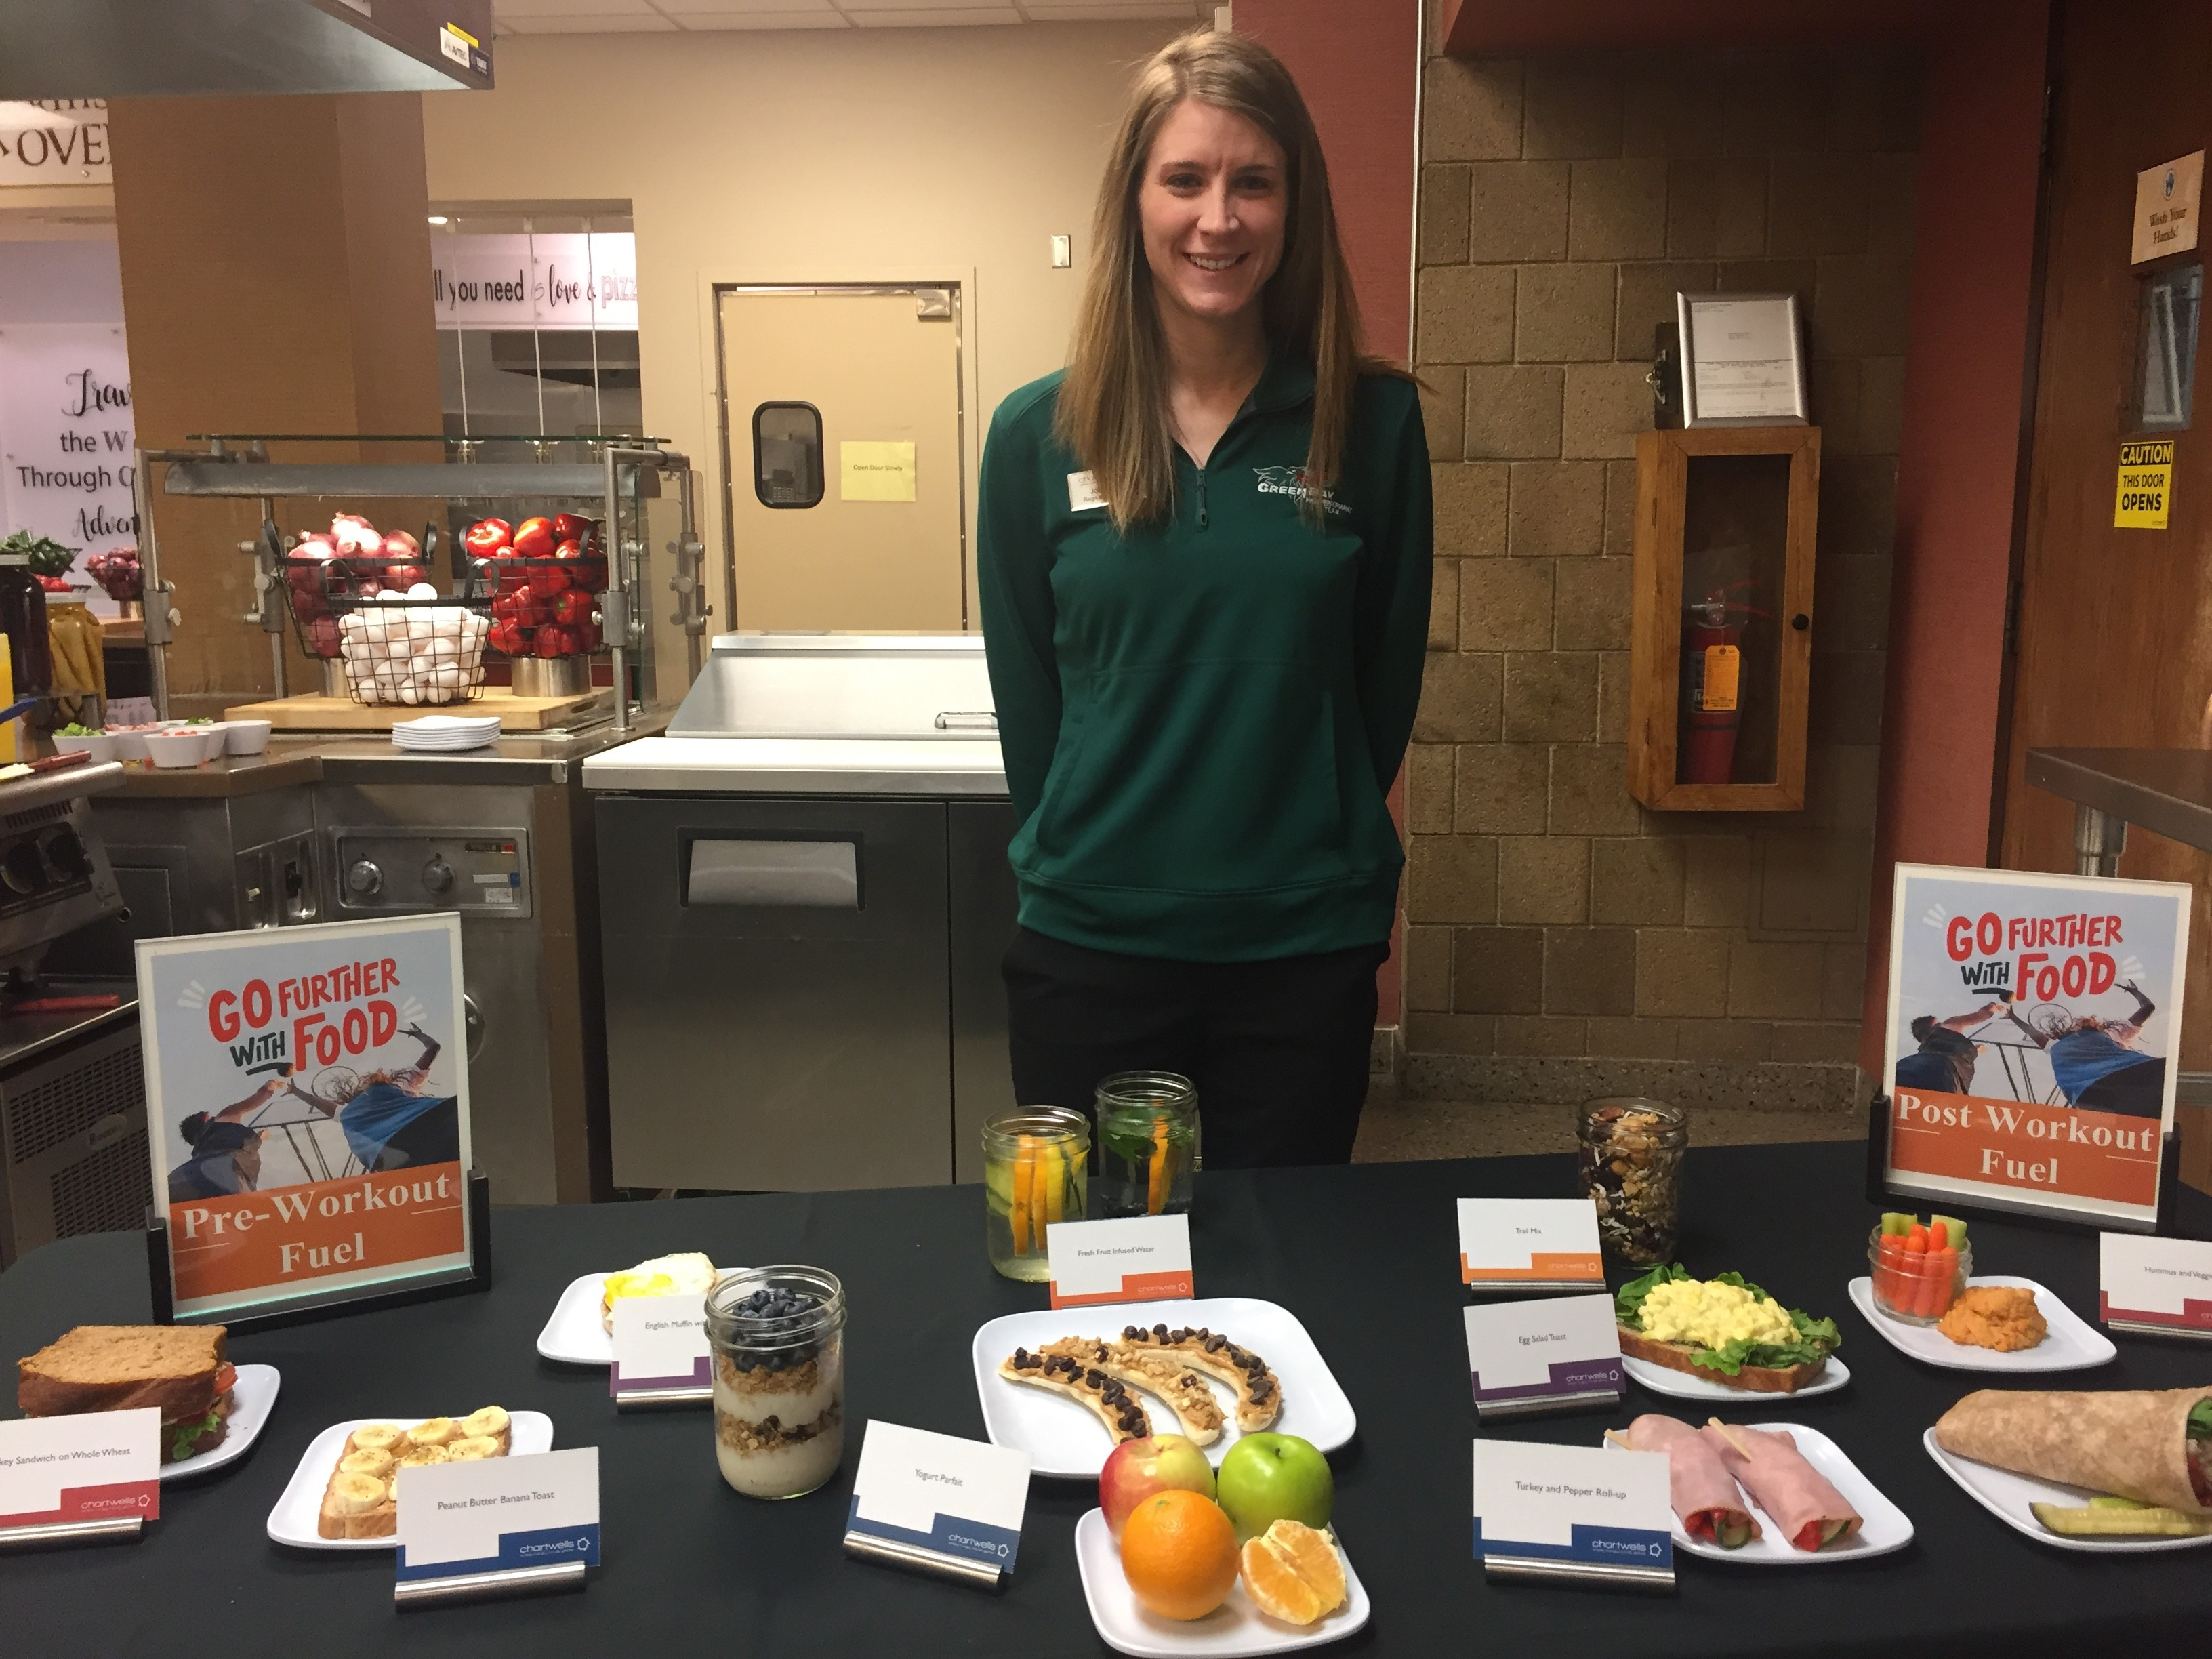 Justin Steinbrinck is hearing all about nutritious recipes on the campus of UW-Green Bay, as he's eating breakfast with the men's soccer team there. (WLUK photo)